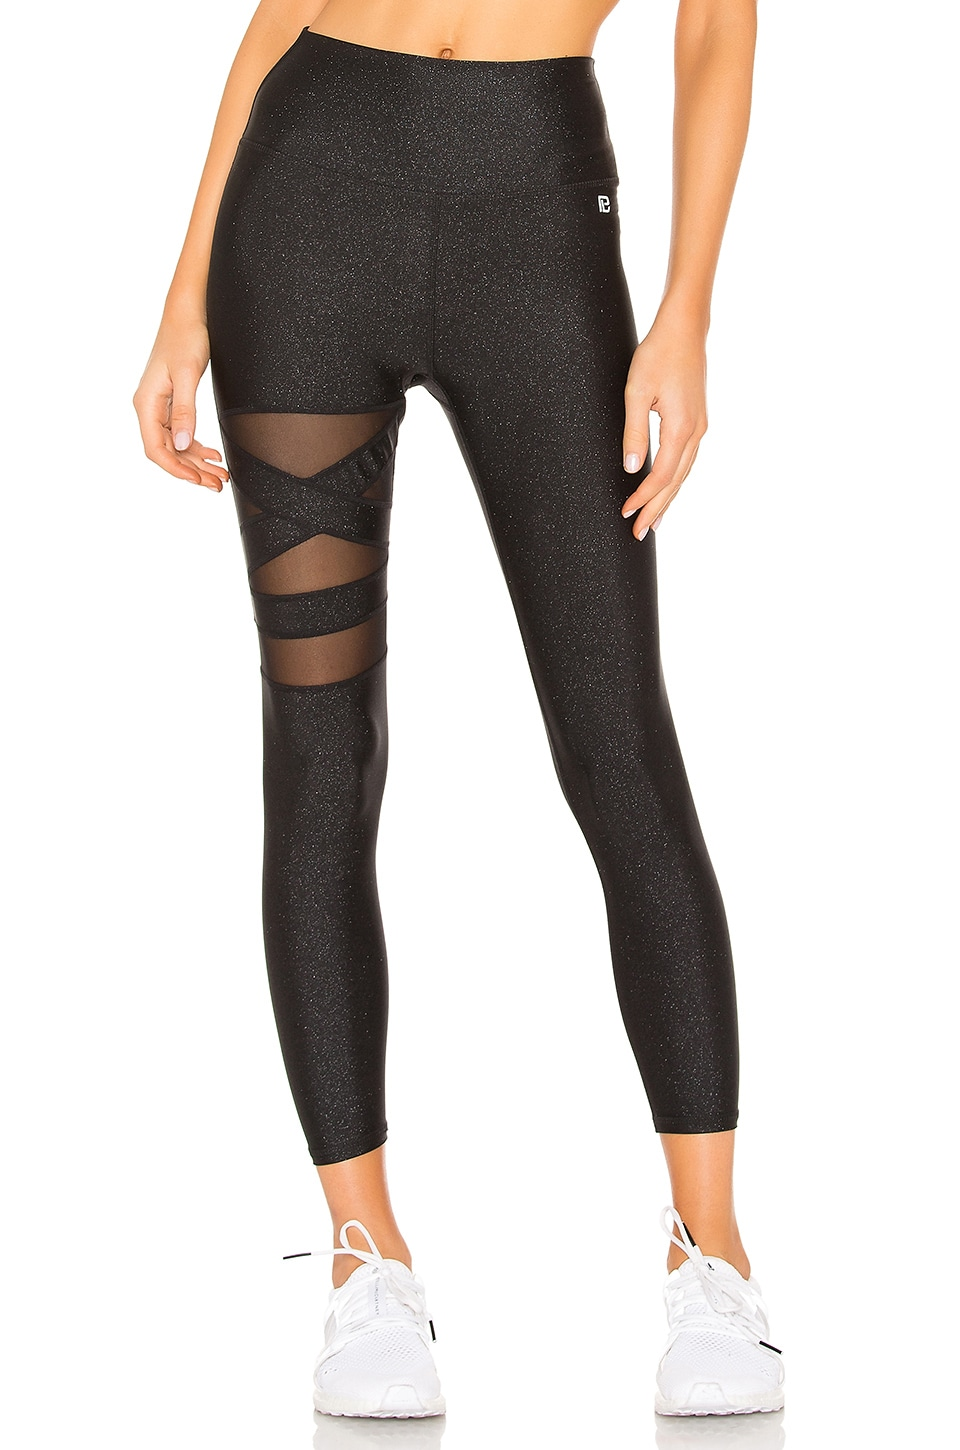 Body Language Lively Legging in Black Twilight